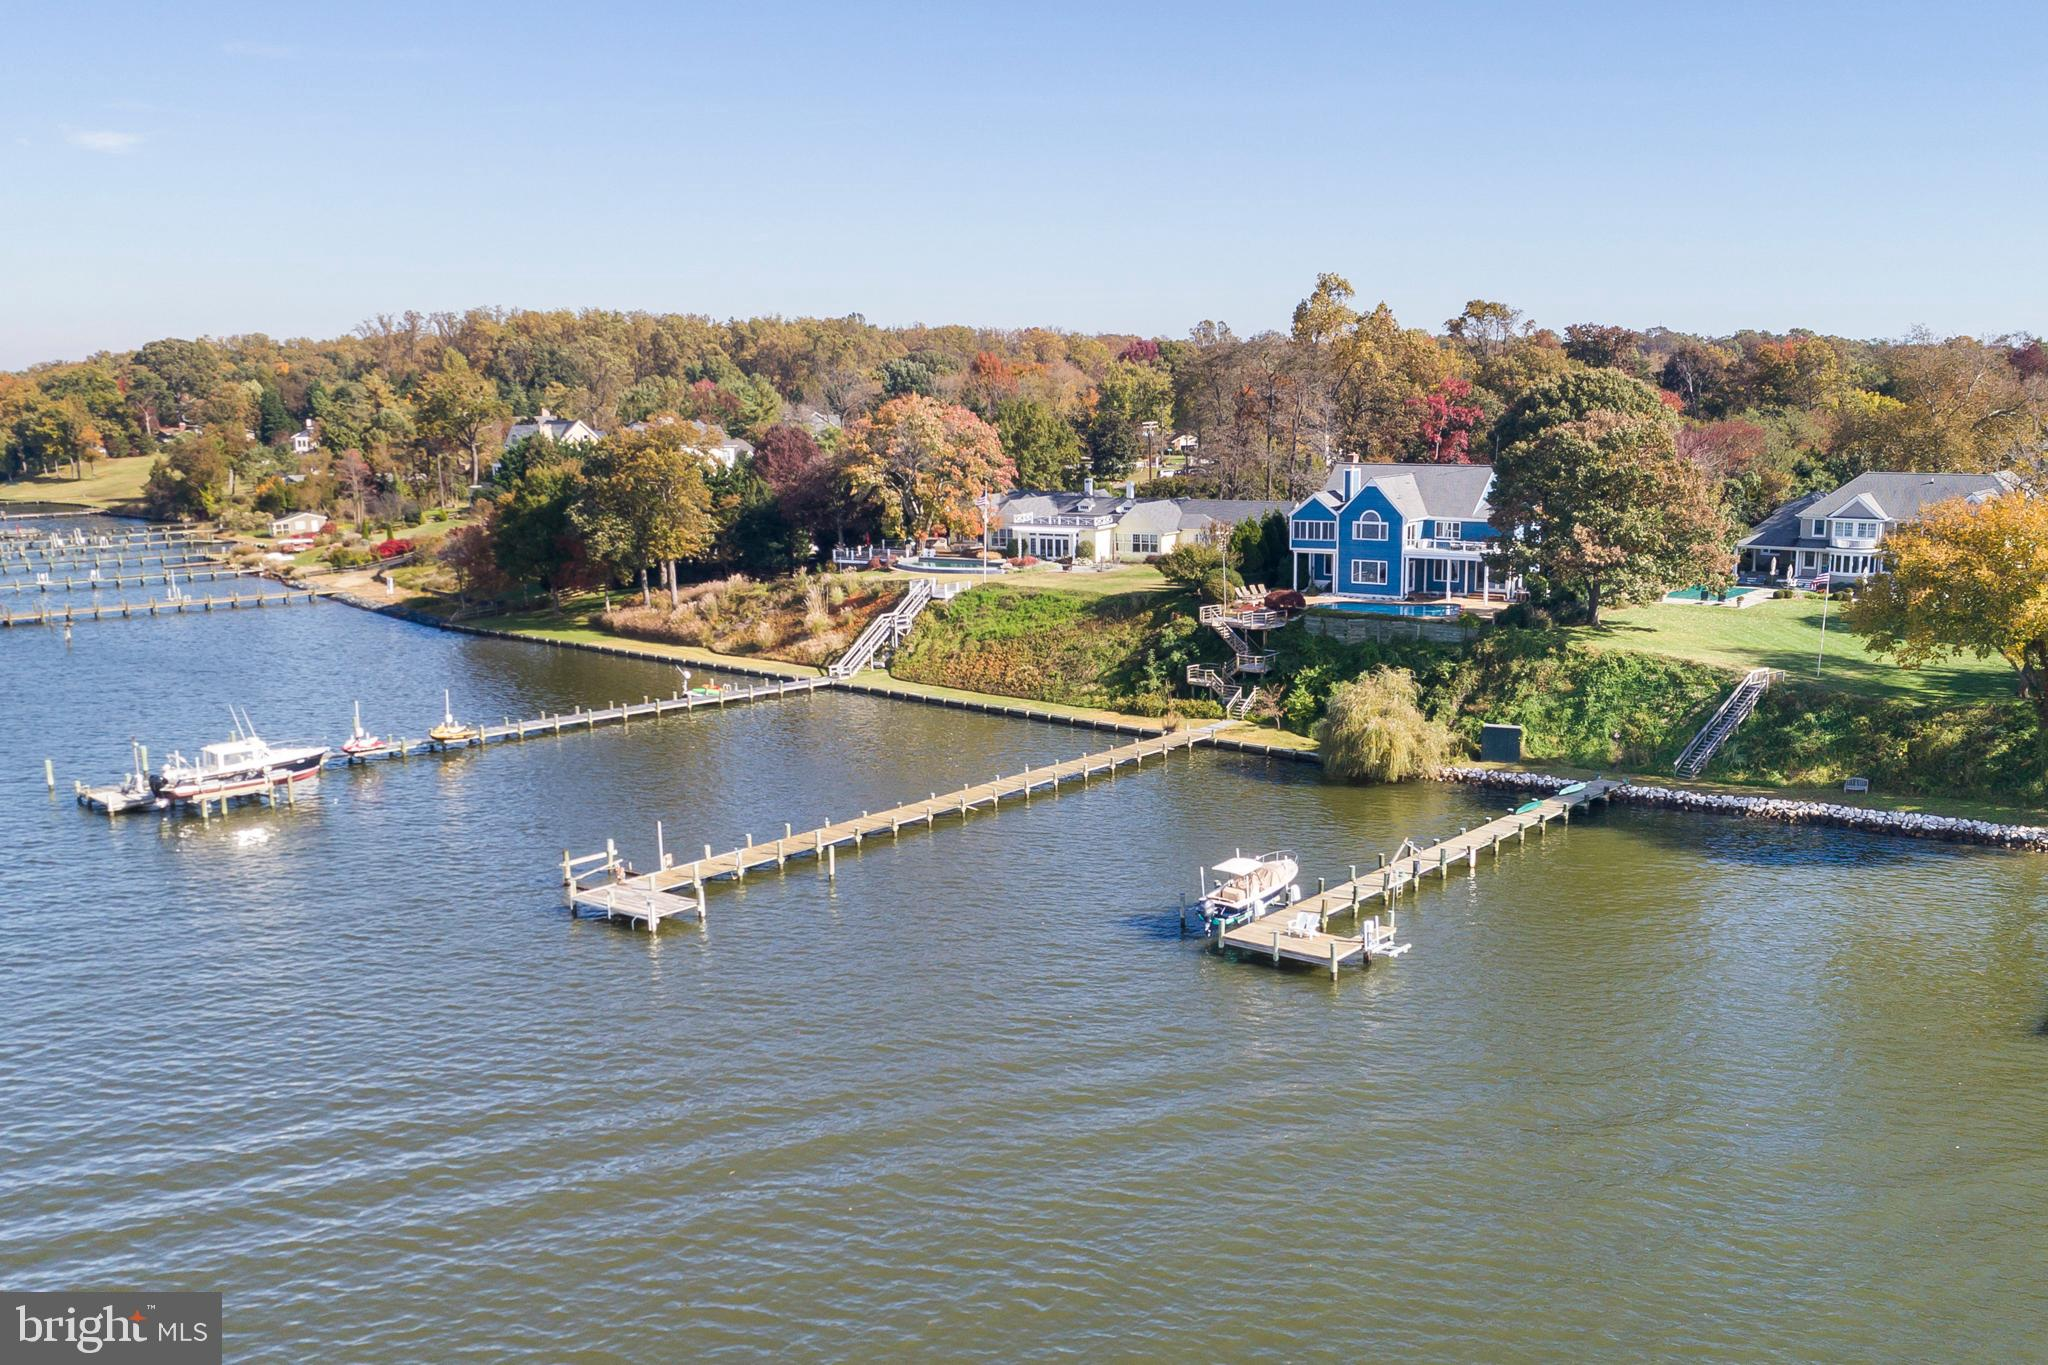 2699 WILD HOLLY ROAD, ANNAPOLIS, MD 21403